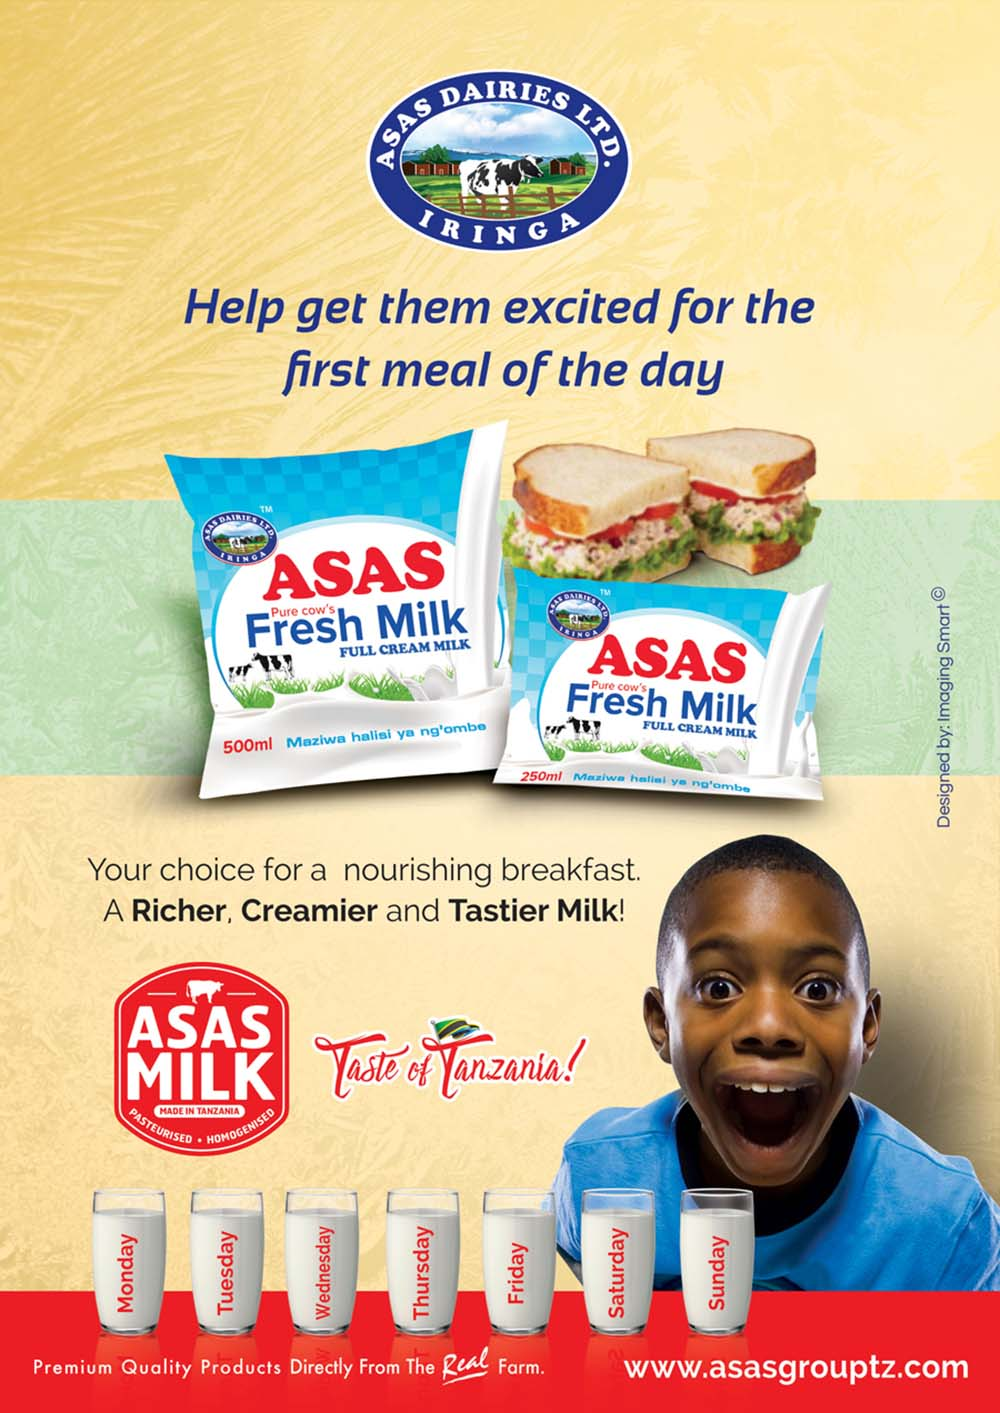 AsasDairies-Get-them-excited-for-the-first-meal-of-the-day